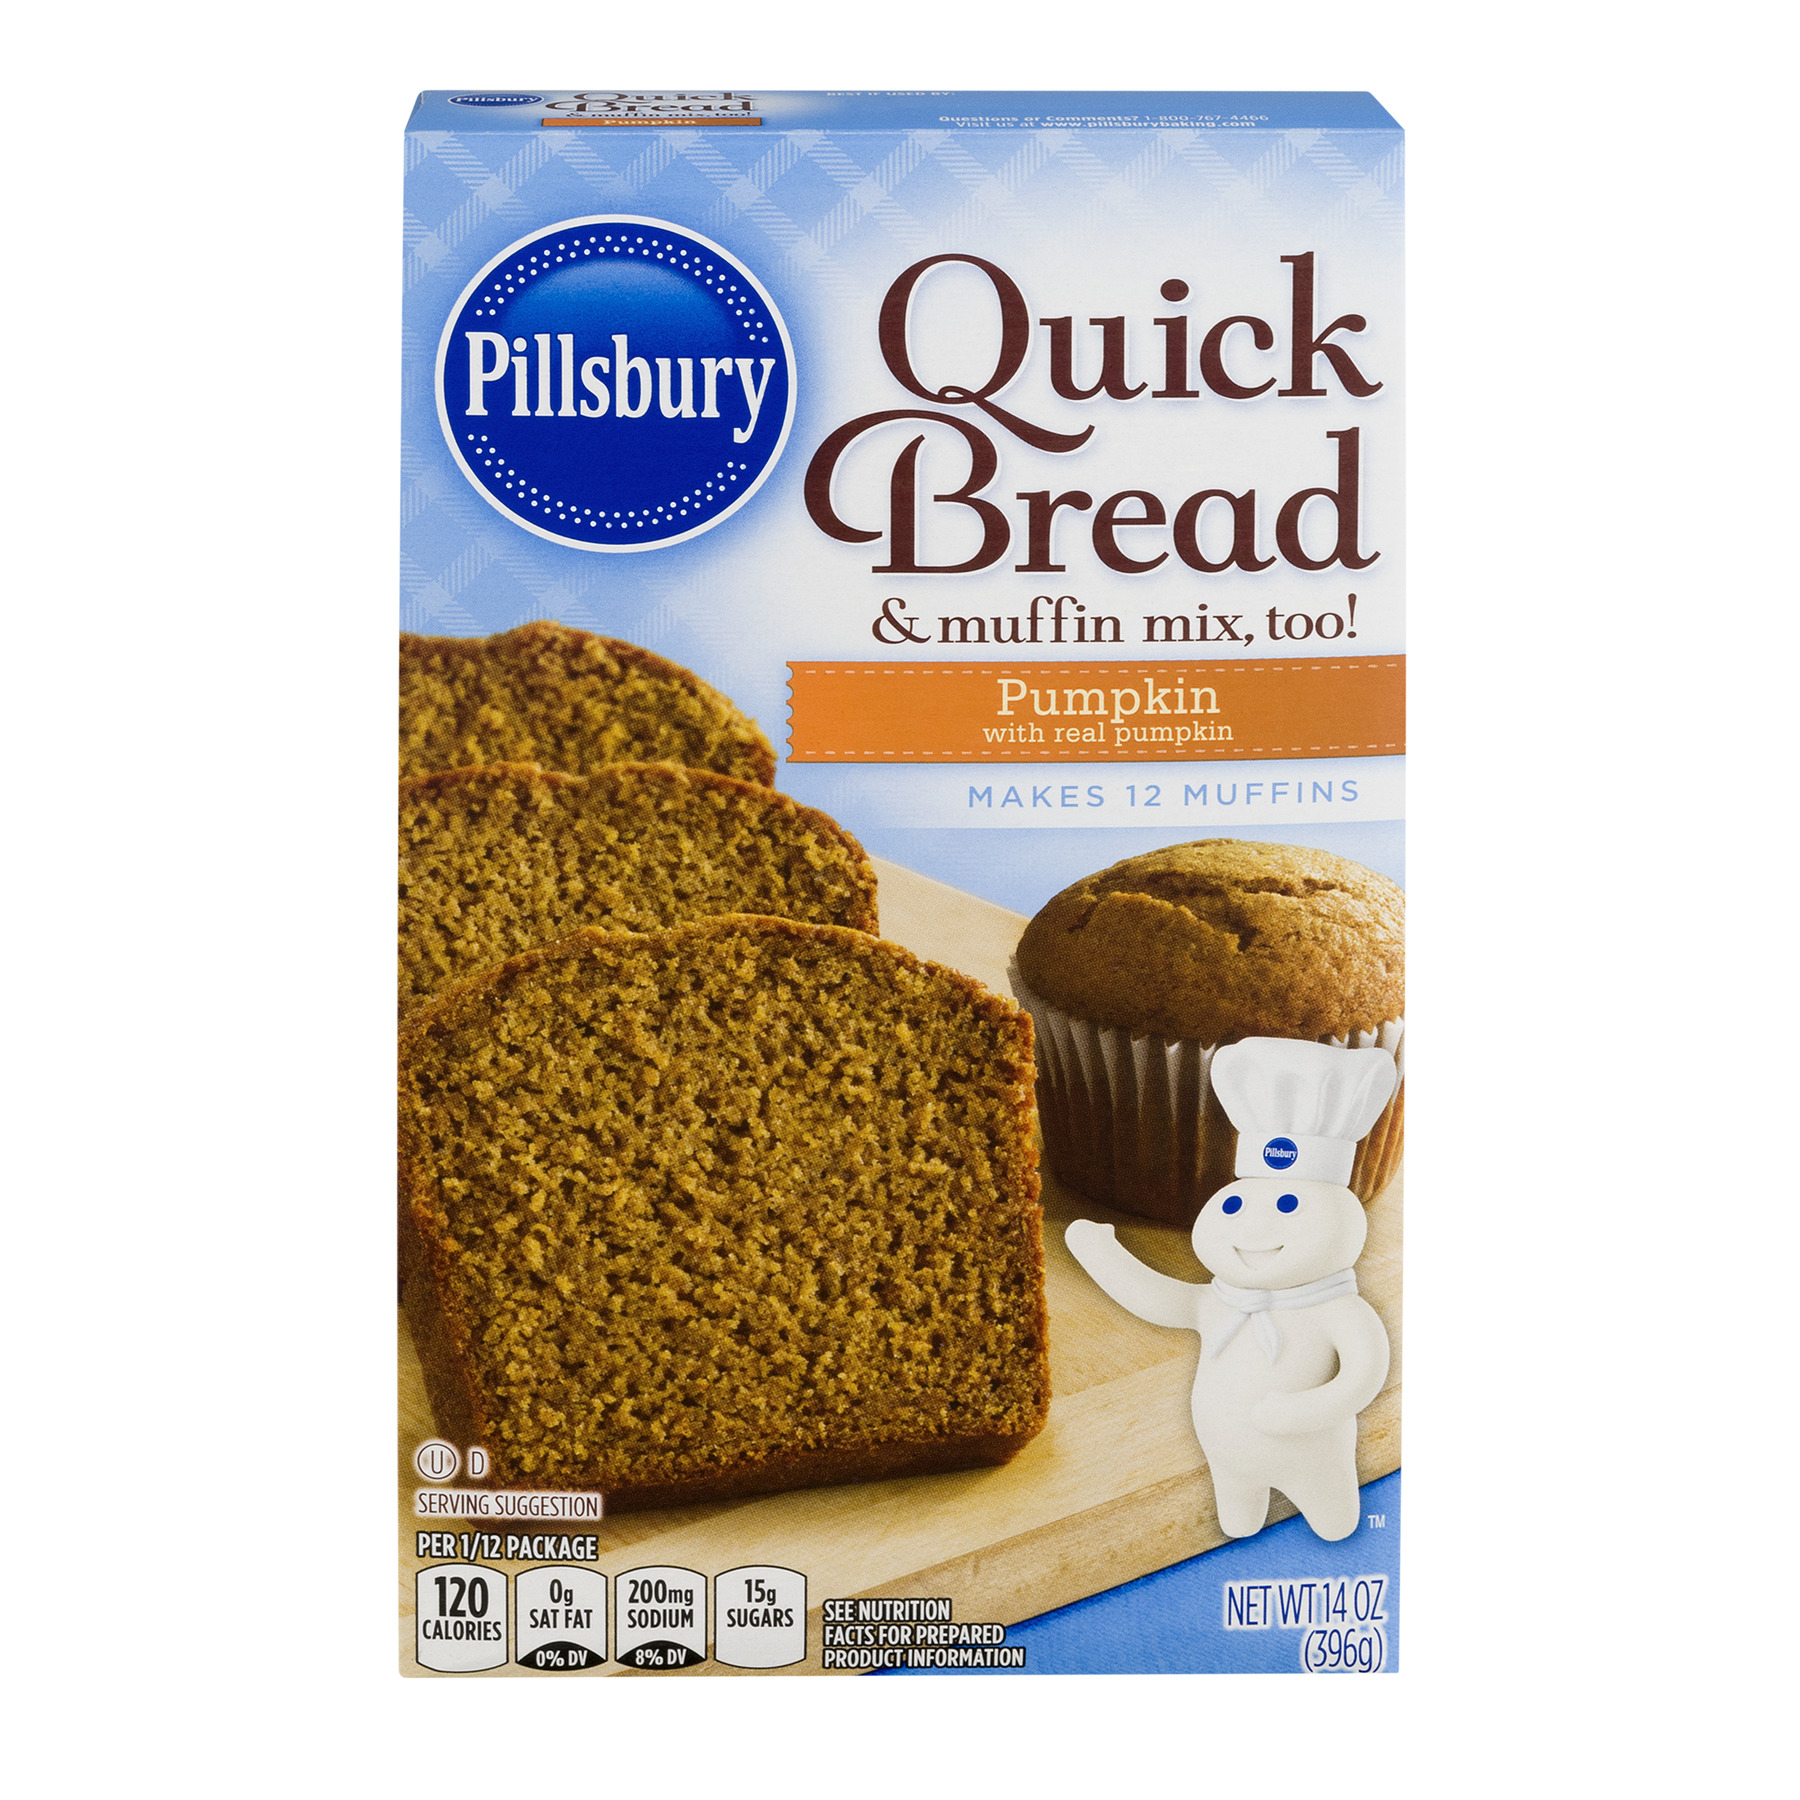 Pillsbury Quick Bread & Muffin Mix Too Pumpkin, 14.0 OZ